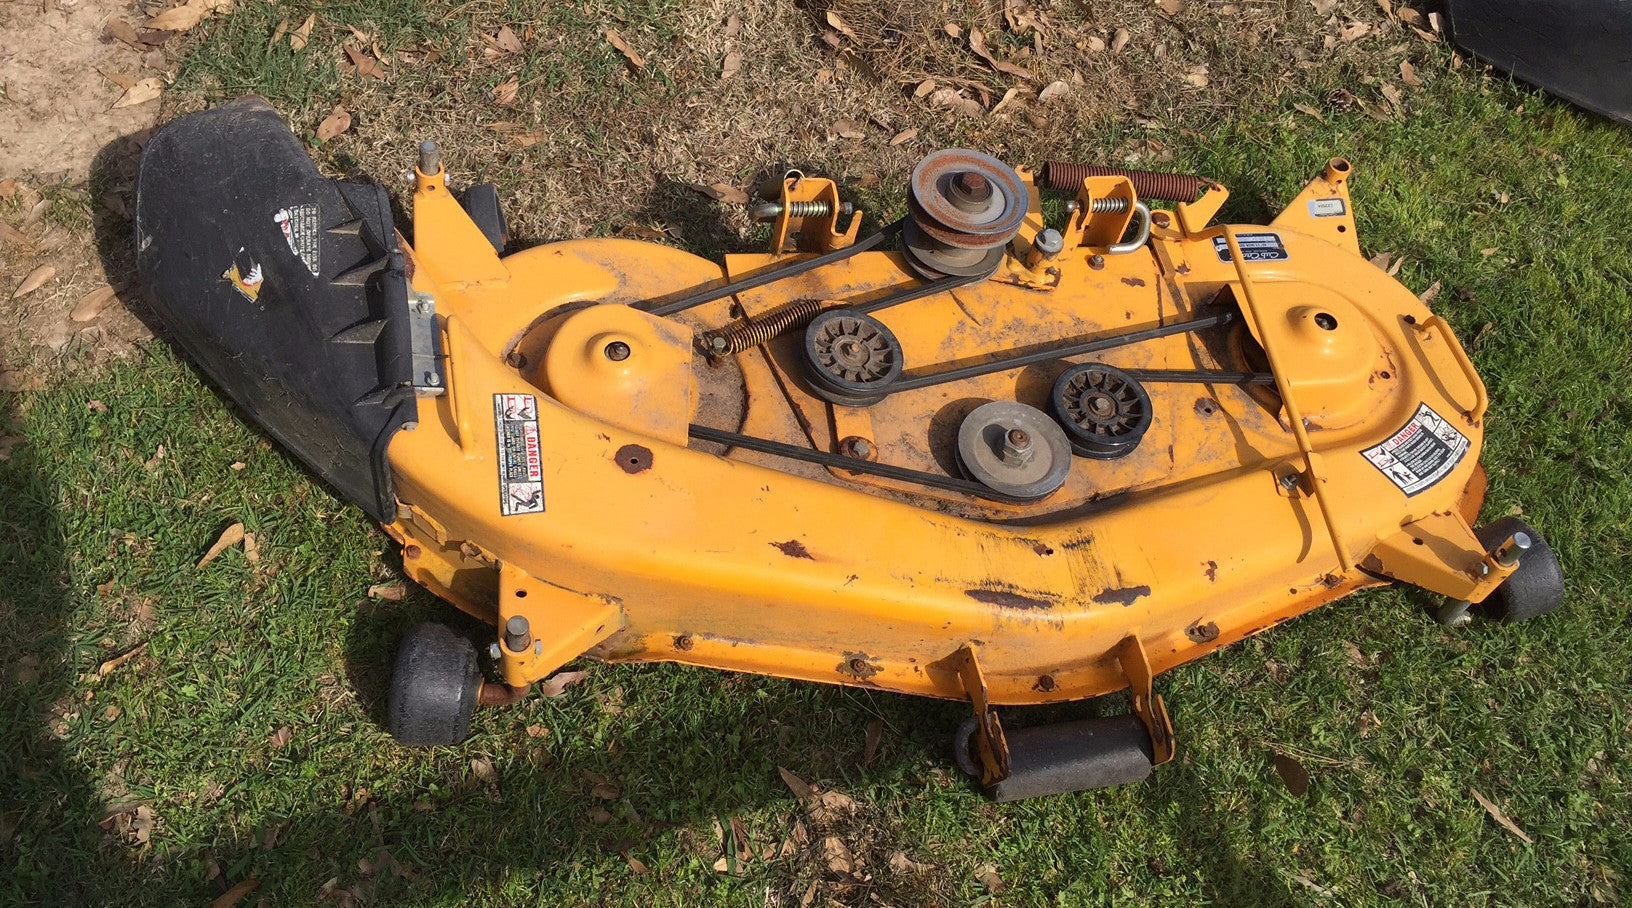 2206 Cub Cadet Wiring Diagram Lawn Mower 759 3732 46 Used 300 Deck Assembly 0716 With Rh Partmartusa Com International Tractor